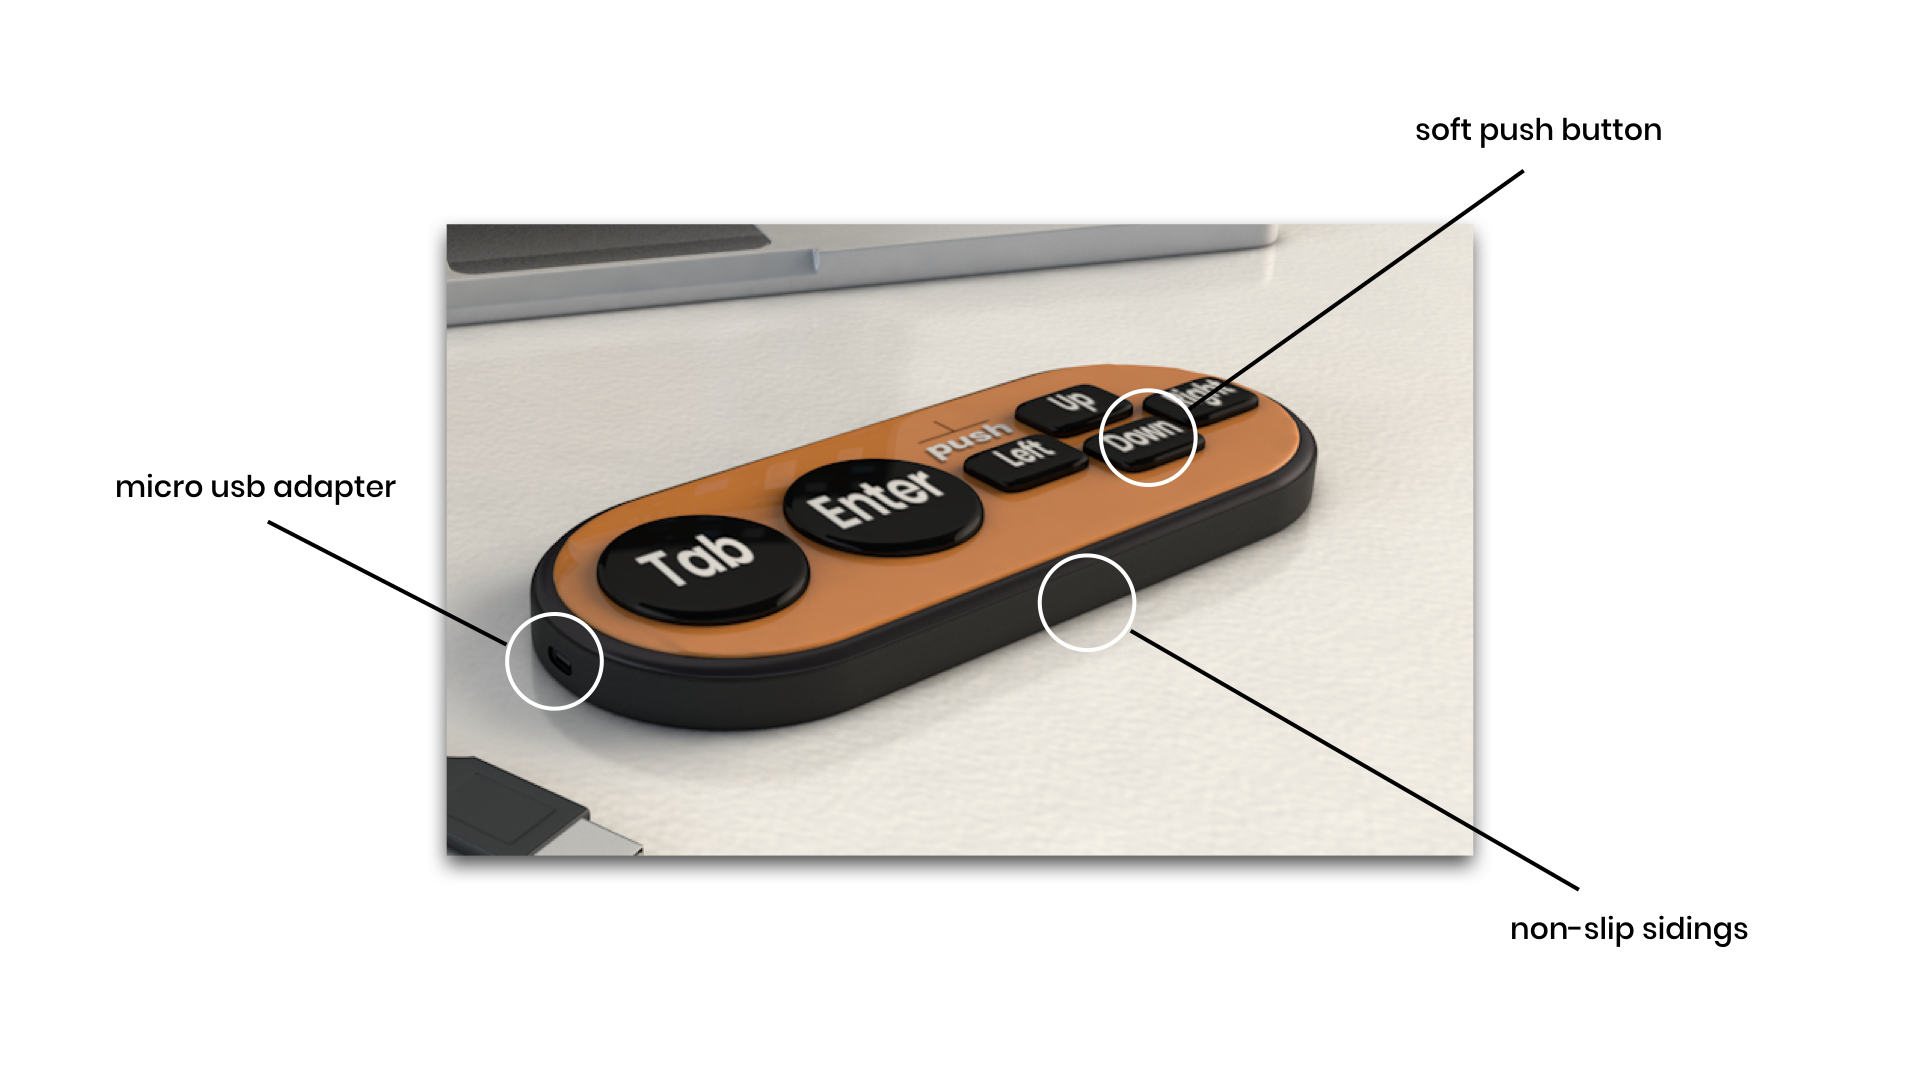 an annotation of the proposed final product pointing out the micro usb push buttons and rubber siding